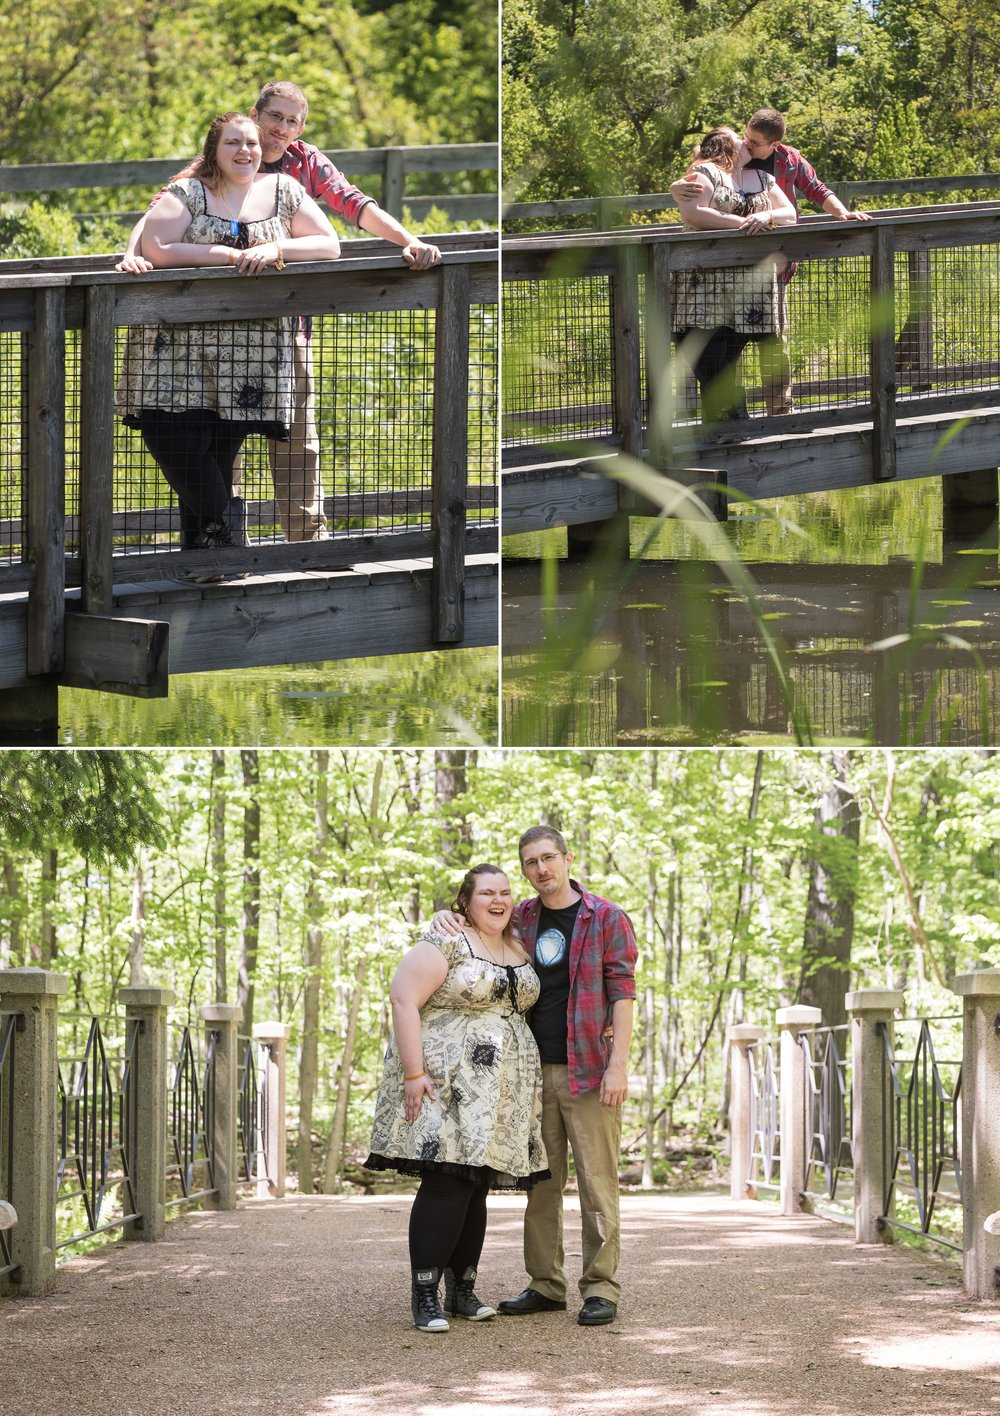 inniswood-metro-gardens-engagement-portrait-session-columbus-westerville-ohio-muschlitz-photography-008.JPG